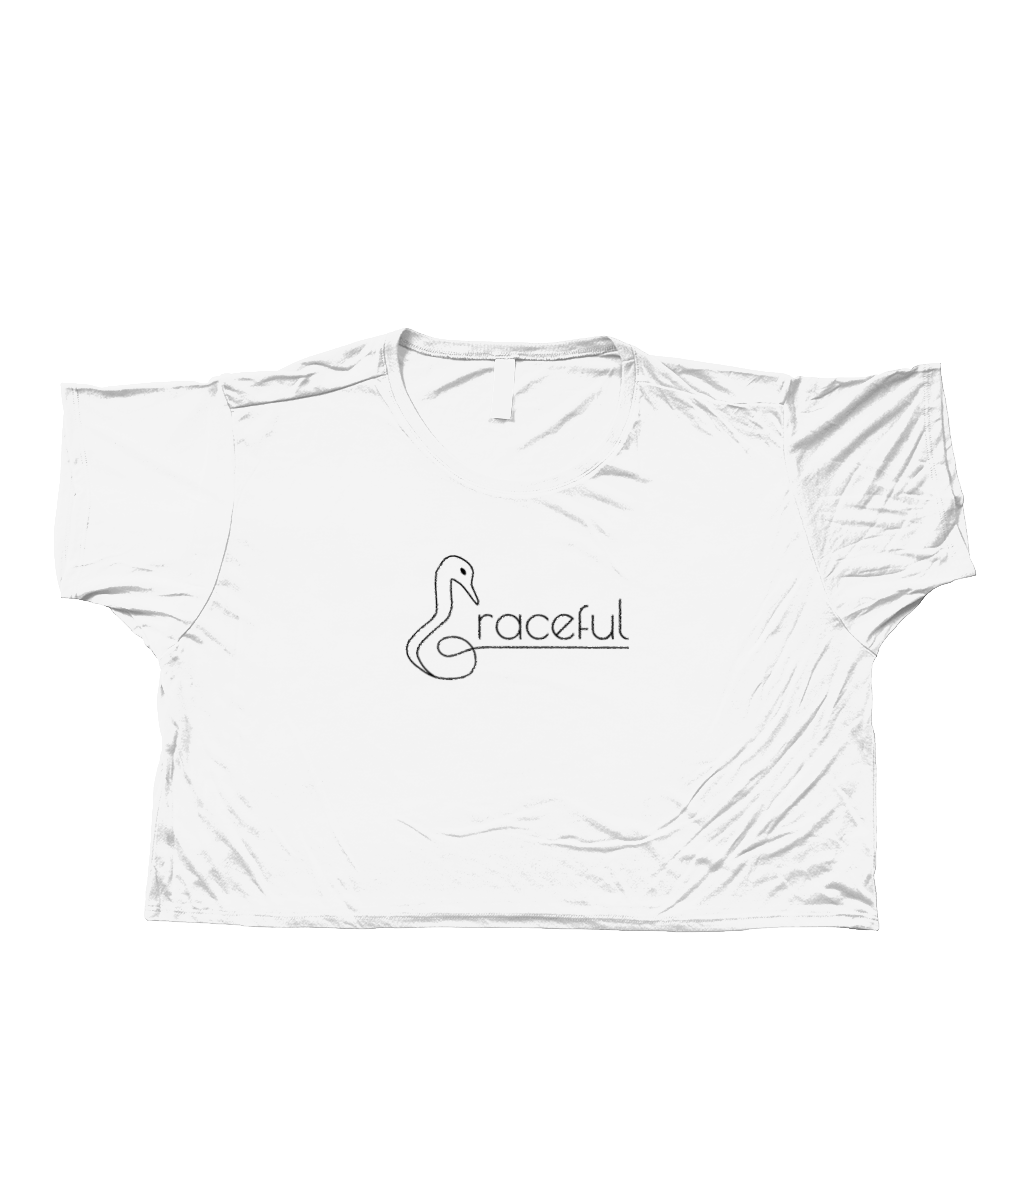 "Ladies Flowy Boxy T-Shirt in White with simple logo saying ""Graceful"" with a swan neck shaped letter ""G"" for Graceful"